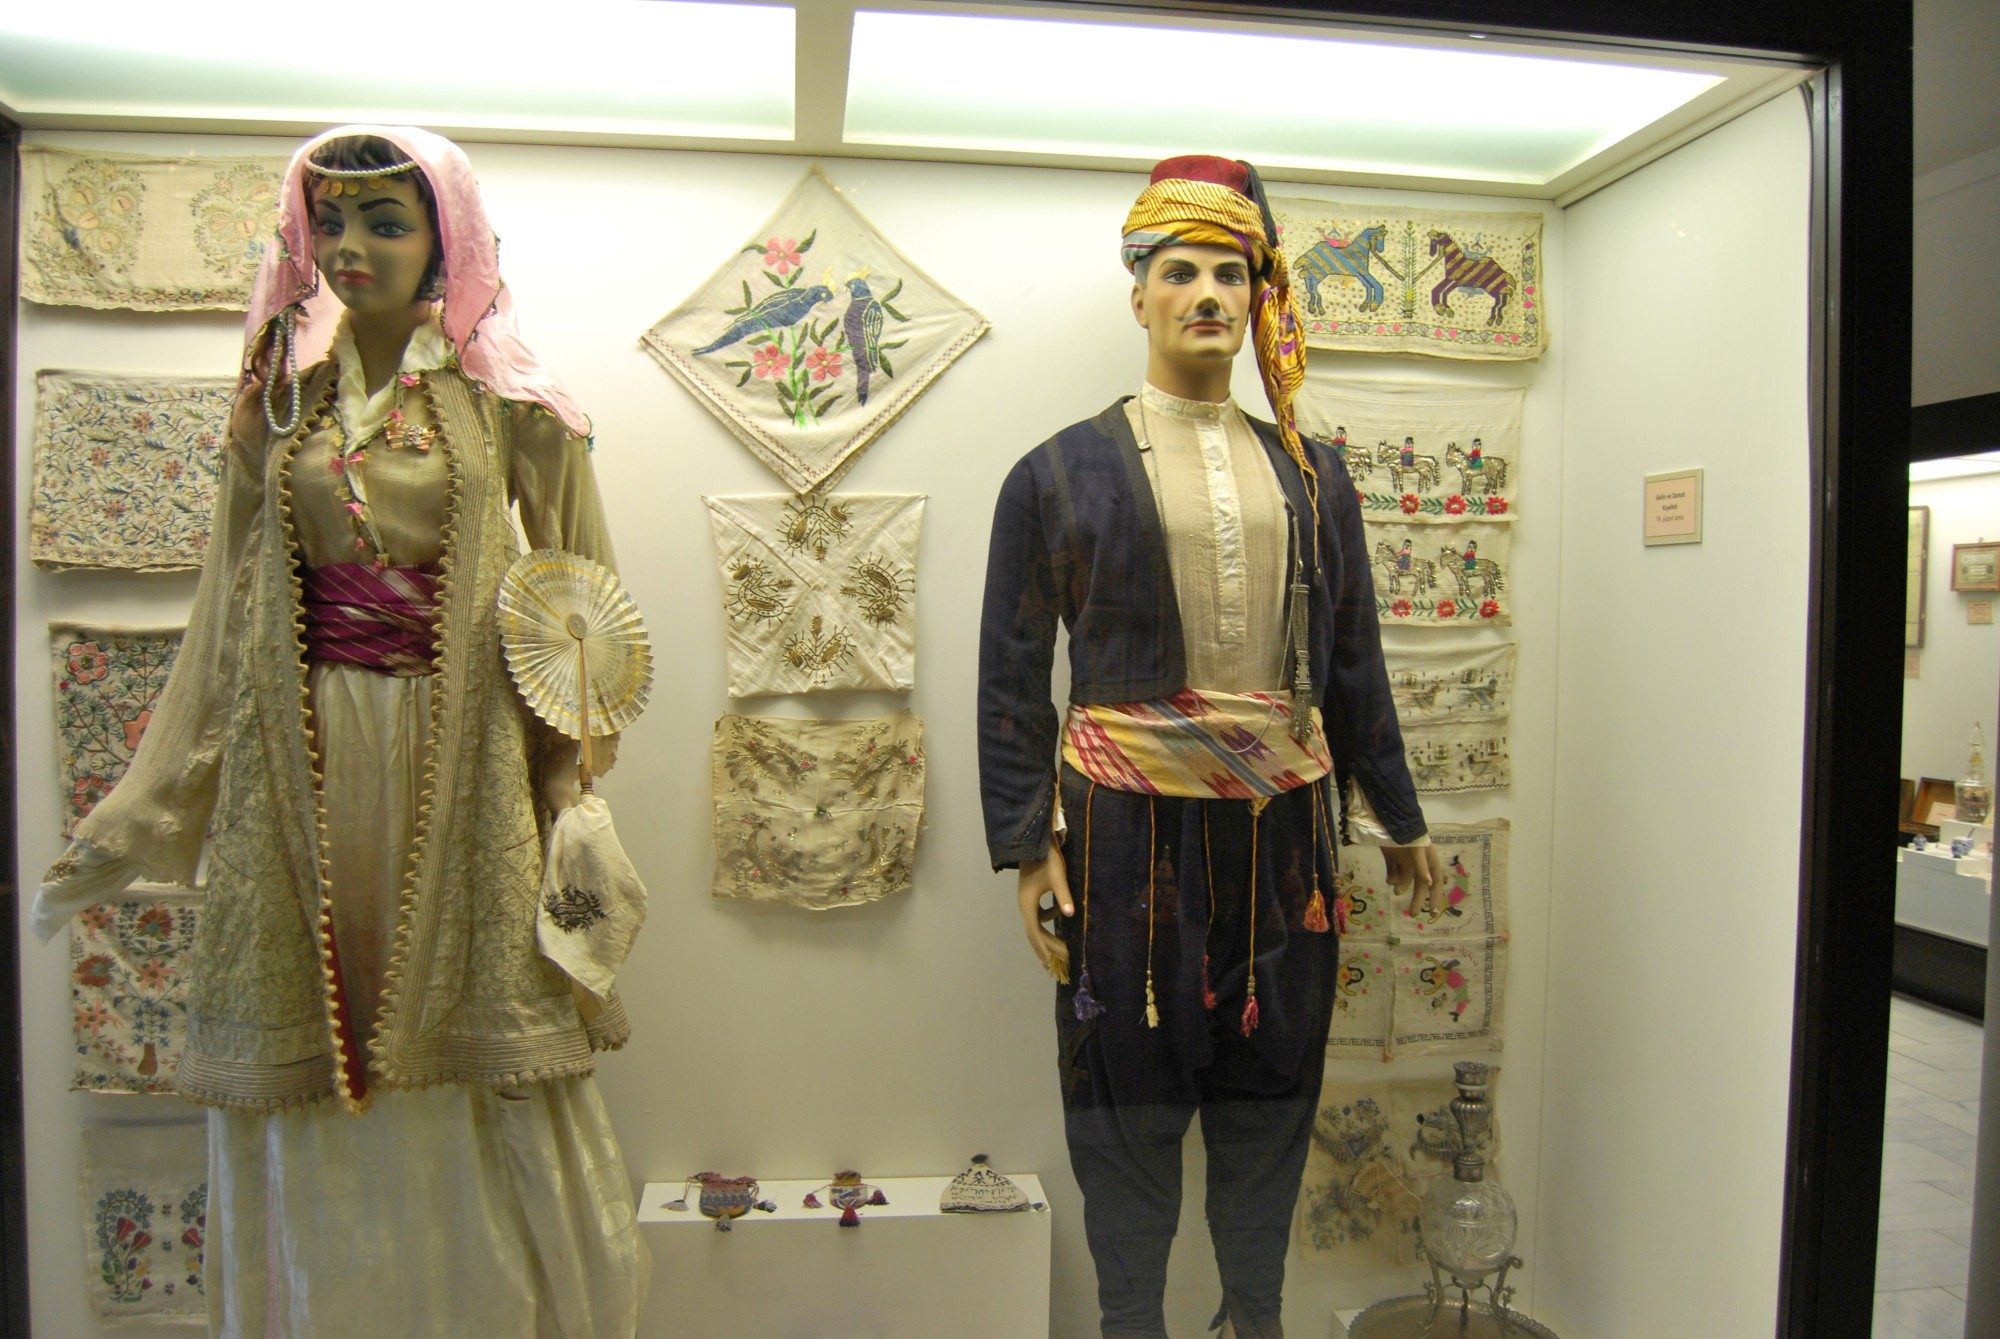 Ottoman-era clothes, Archaeological and Ethnographic Museum in Edirne